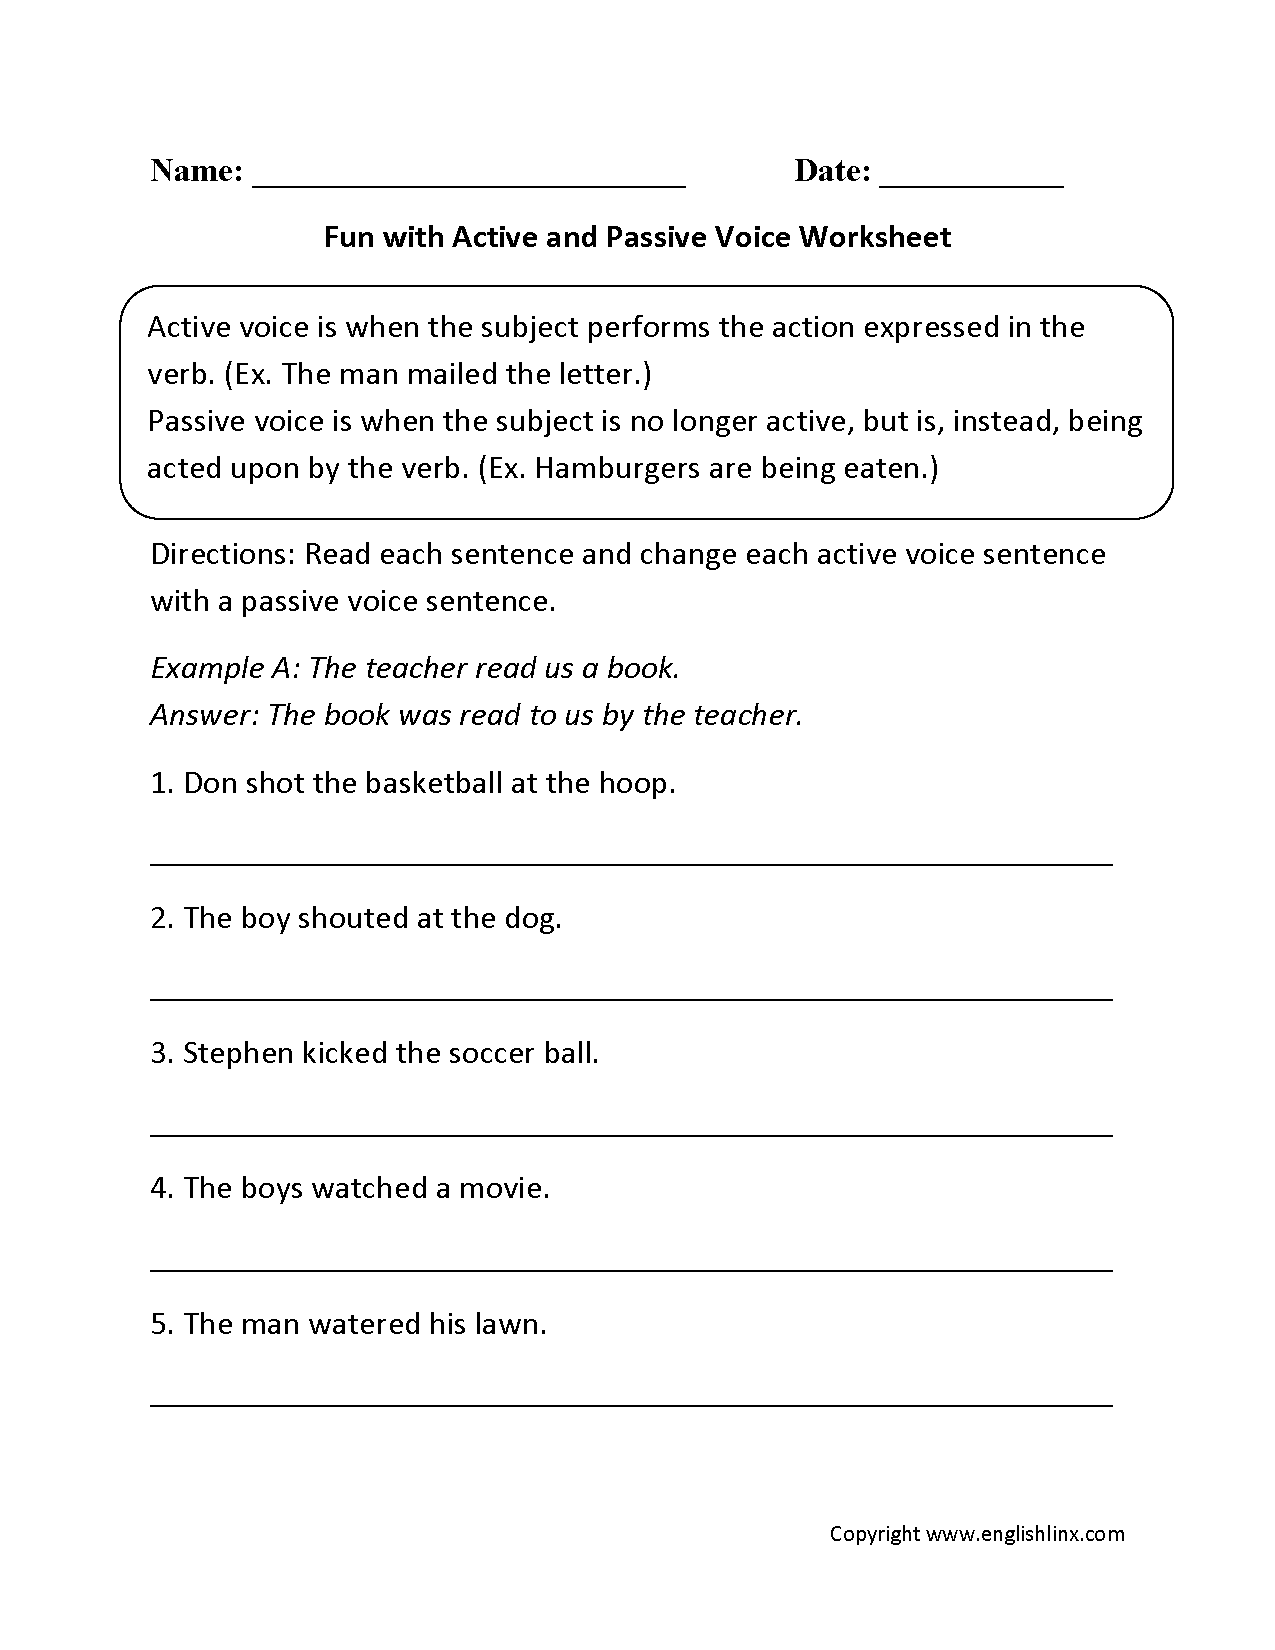 Worksheets Language Arts Worksheets For 6th Grade englishlinx com active and passive voice worksheets worksheets